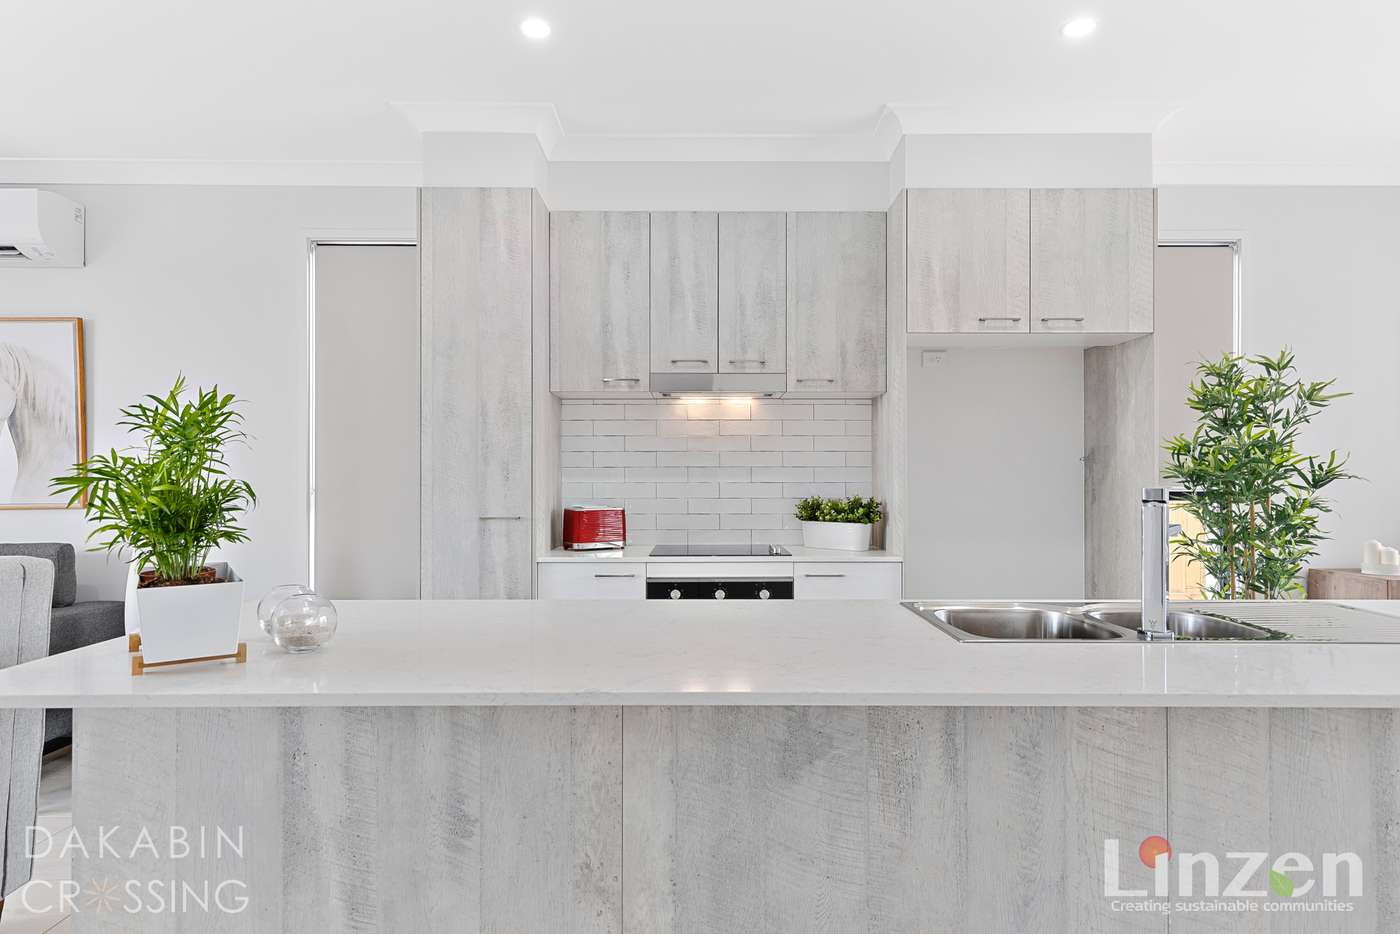 Main view of Homely townhouse listing, 91/140 Alma Road, Dakabin, QLD 4503